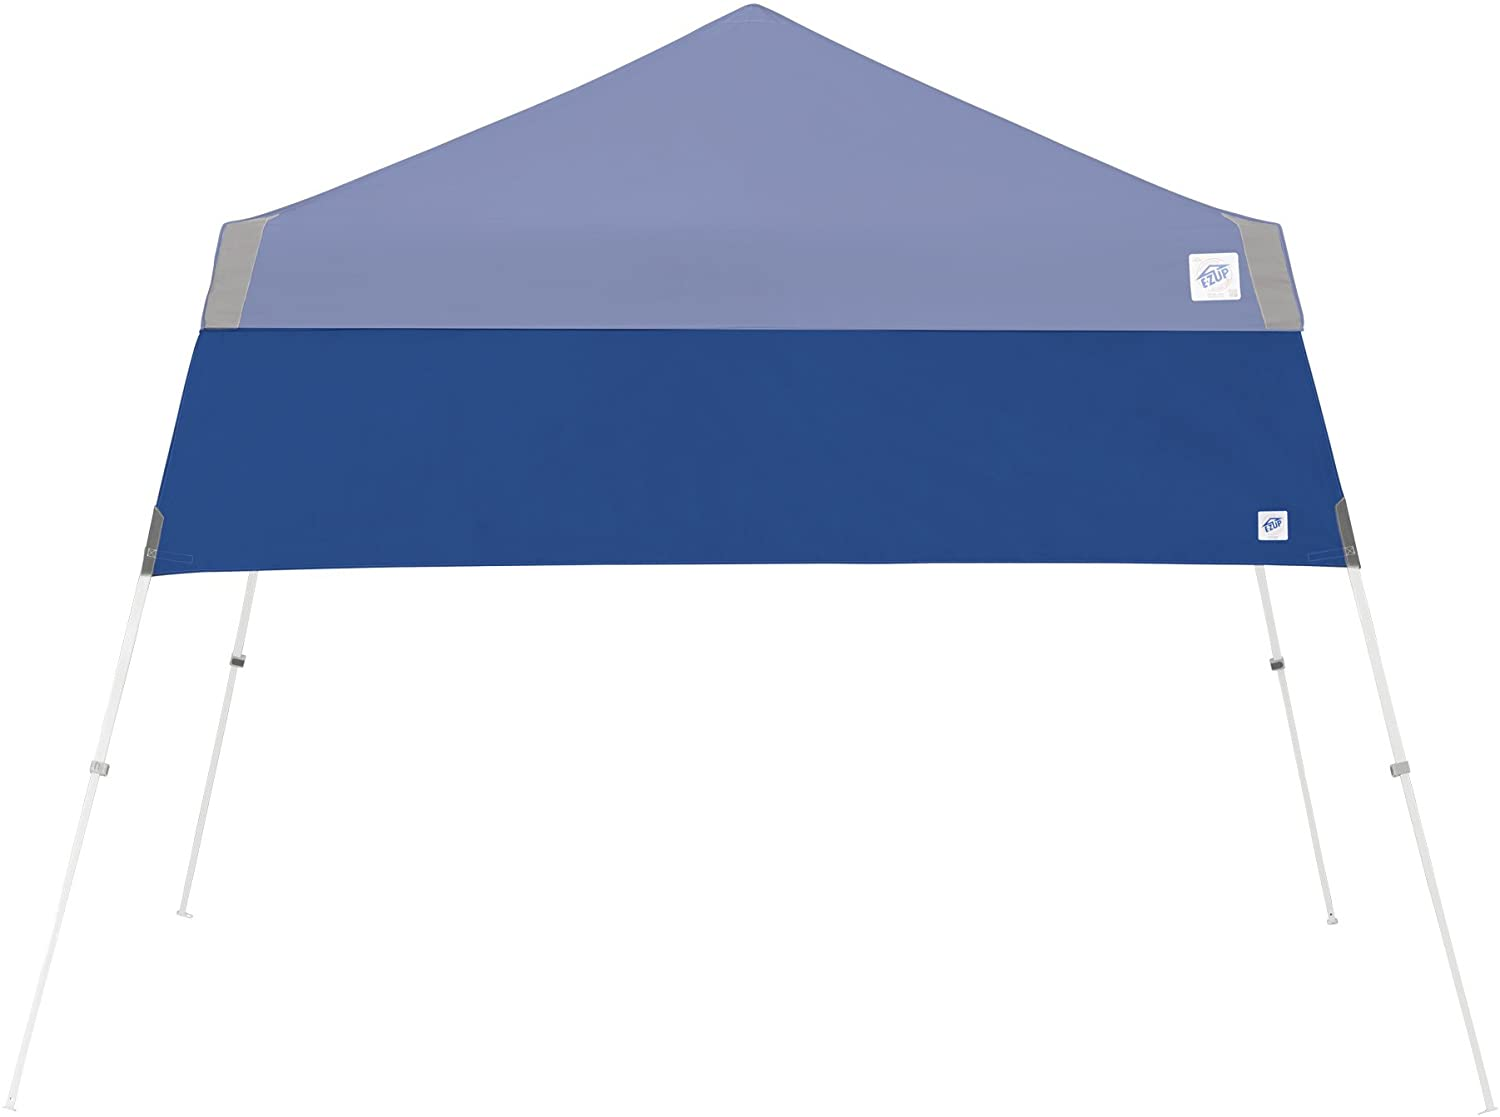 E-Z UP Recreational Half Wall, Fits Angled Leg 10' x 10' Canopy, Truss Clips and Storage Bag, Royal Blue